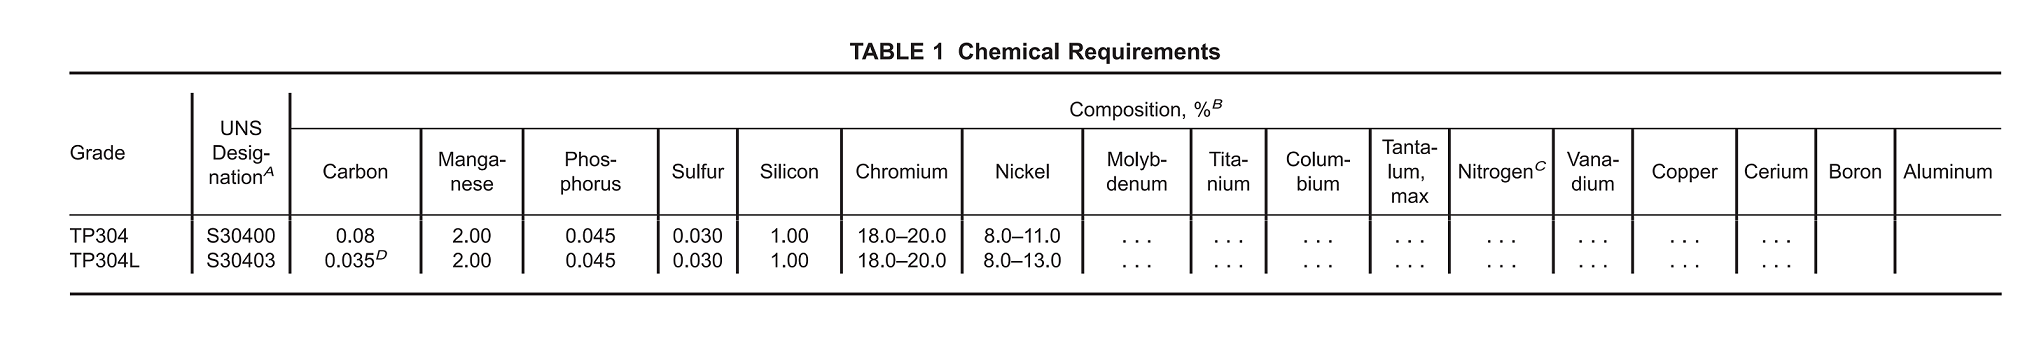 304 stainless steel chemical composition-(304L)